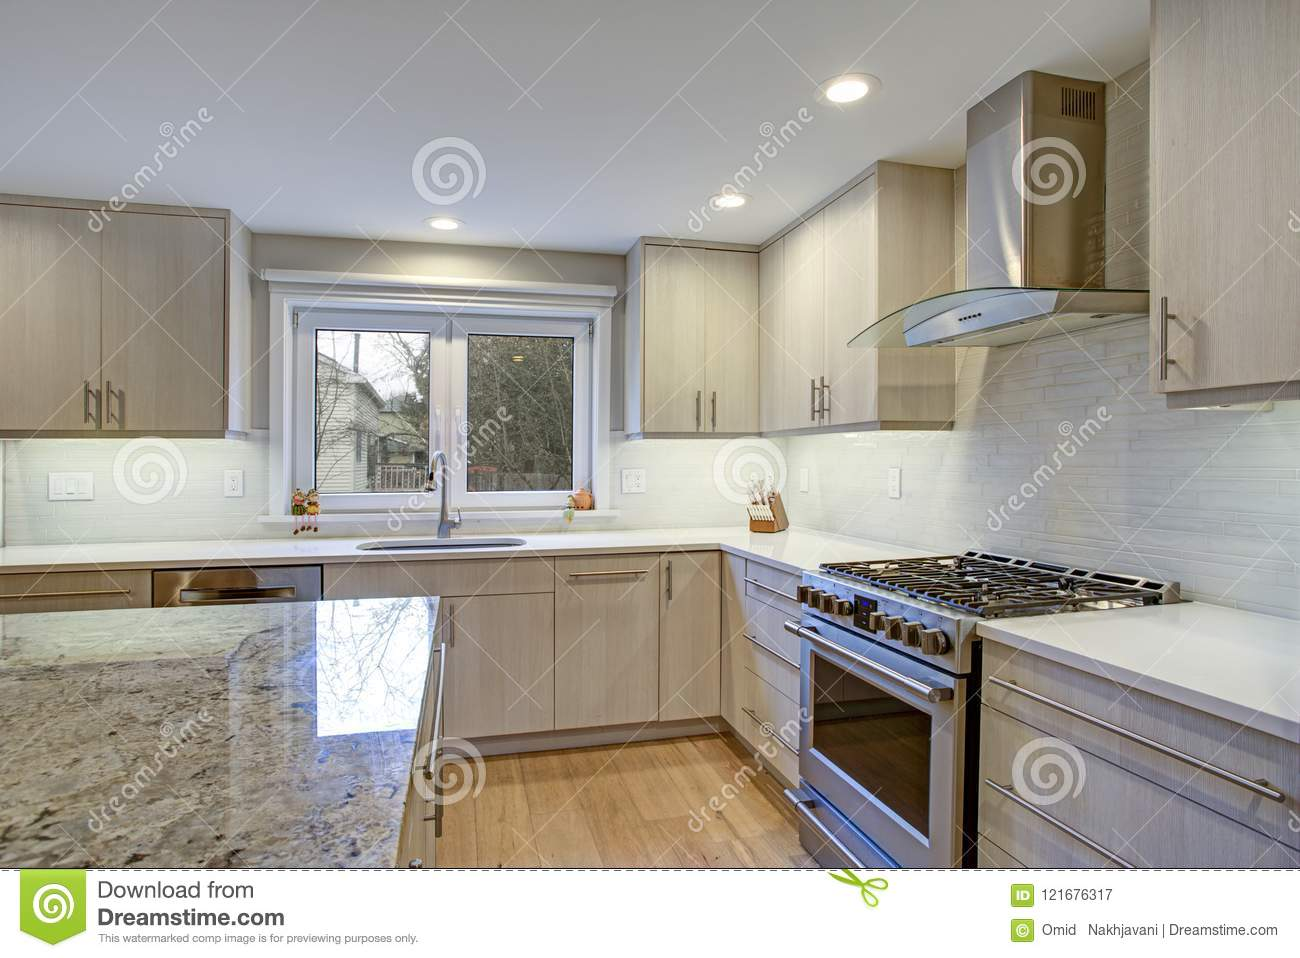 Lovely Kitchen Room With Kitchen Island Stock Image Image Of Home